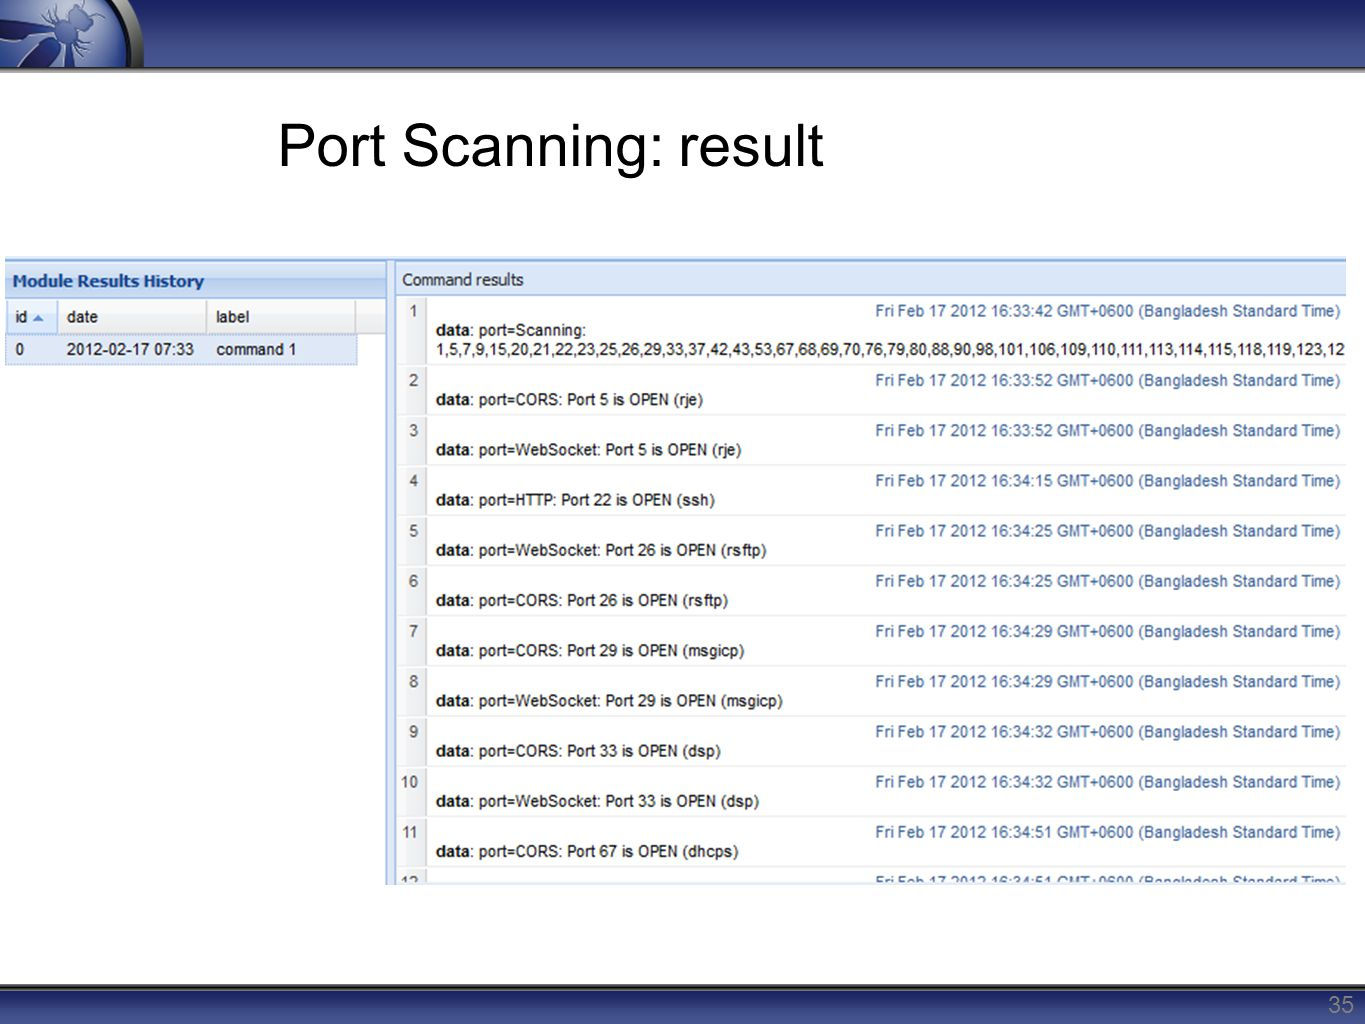 Port Scanning: result